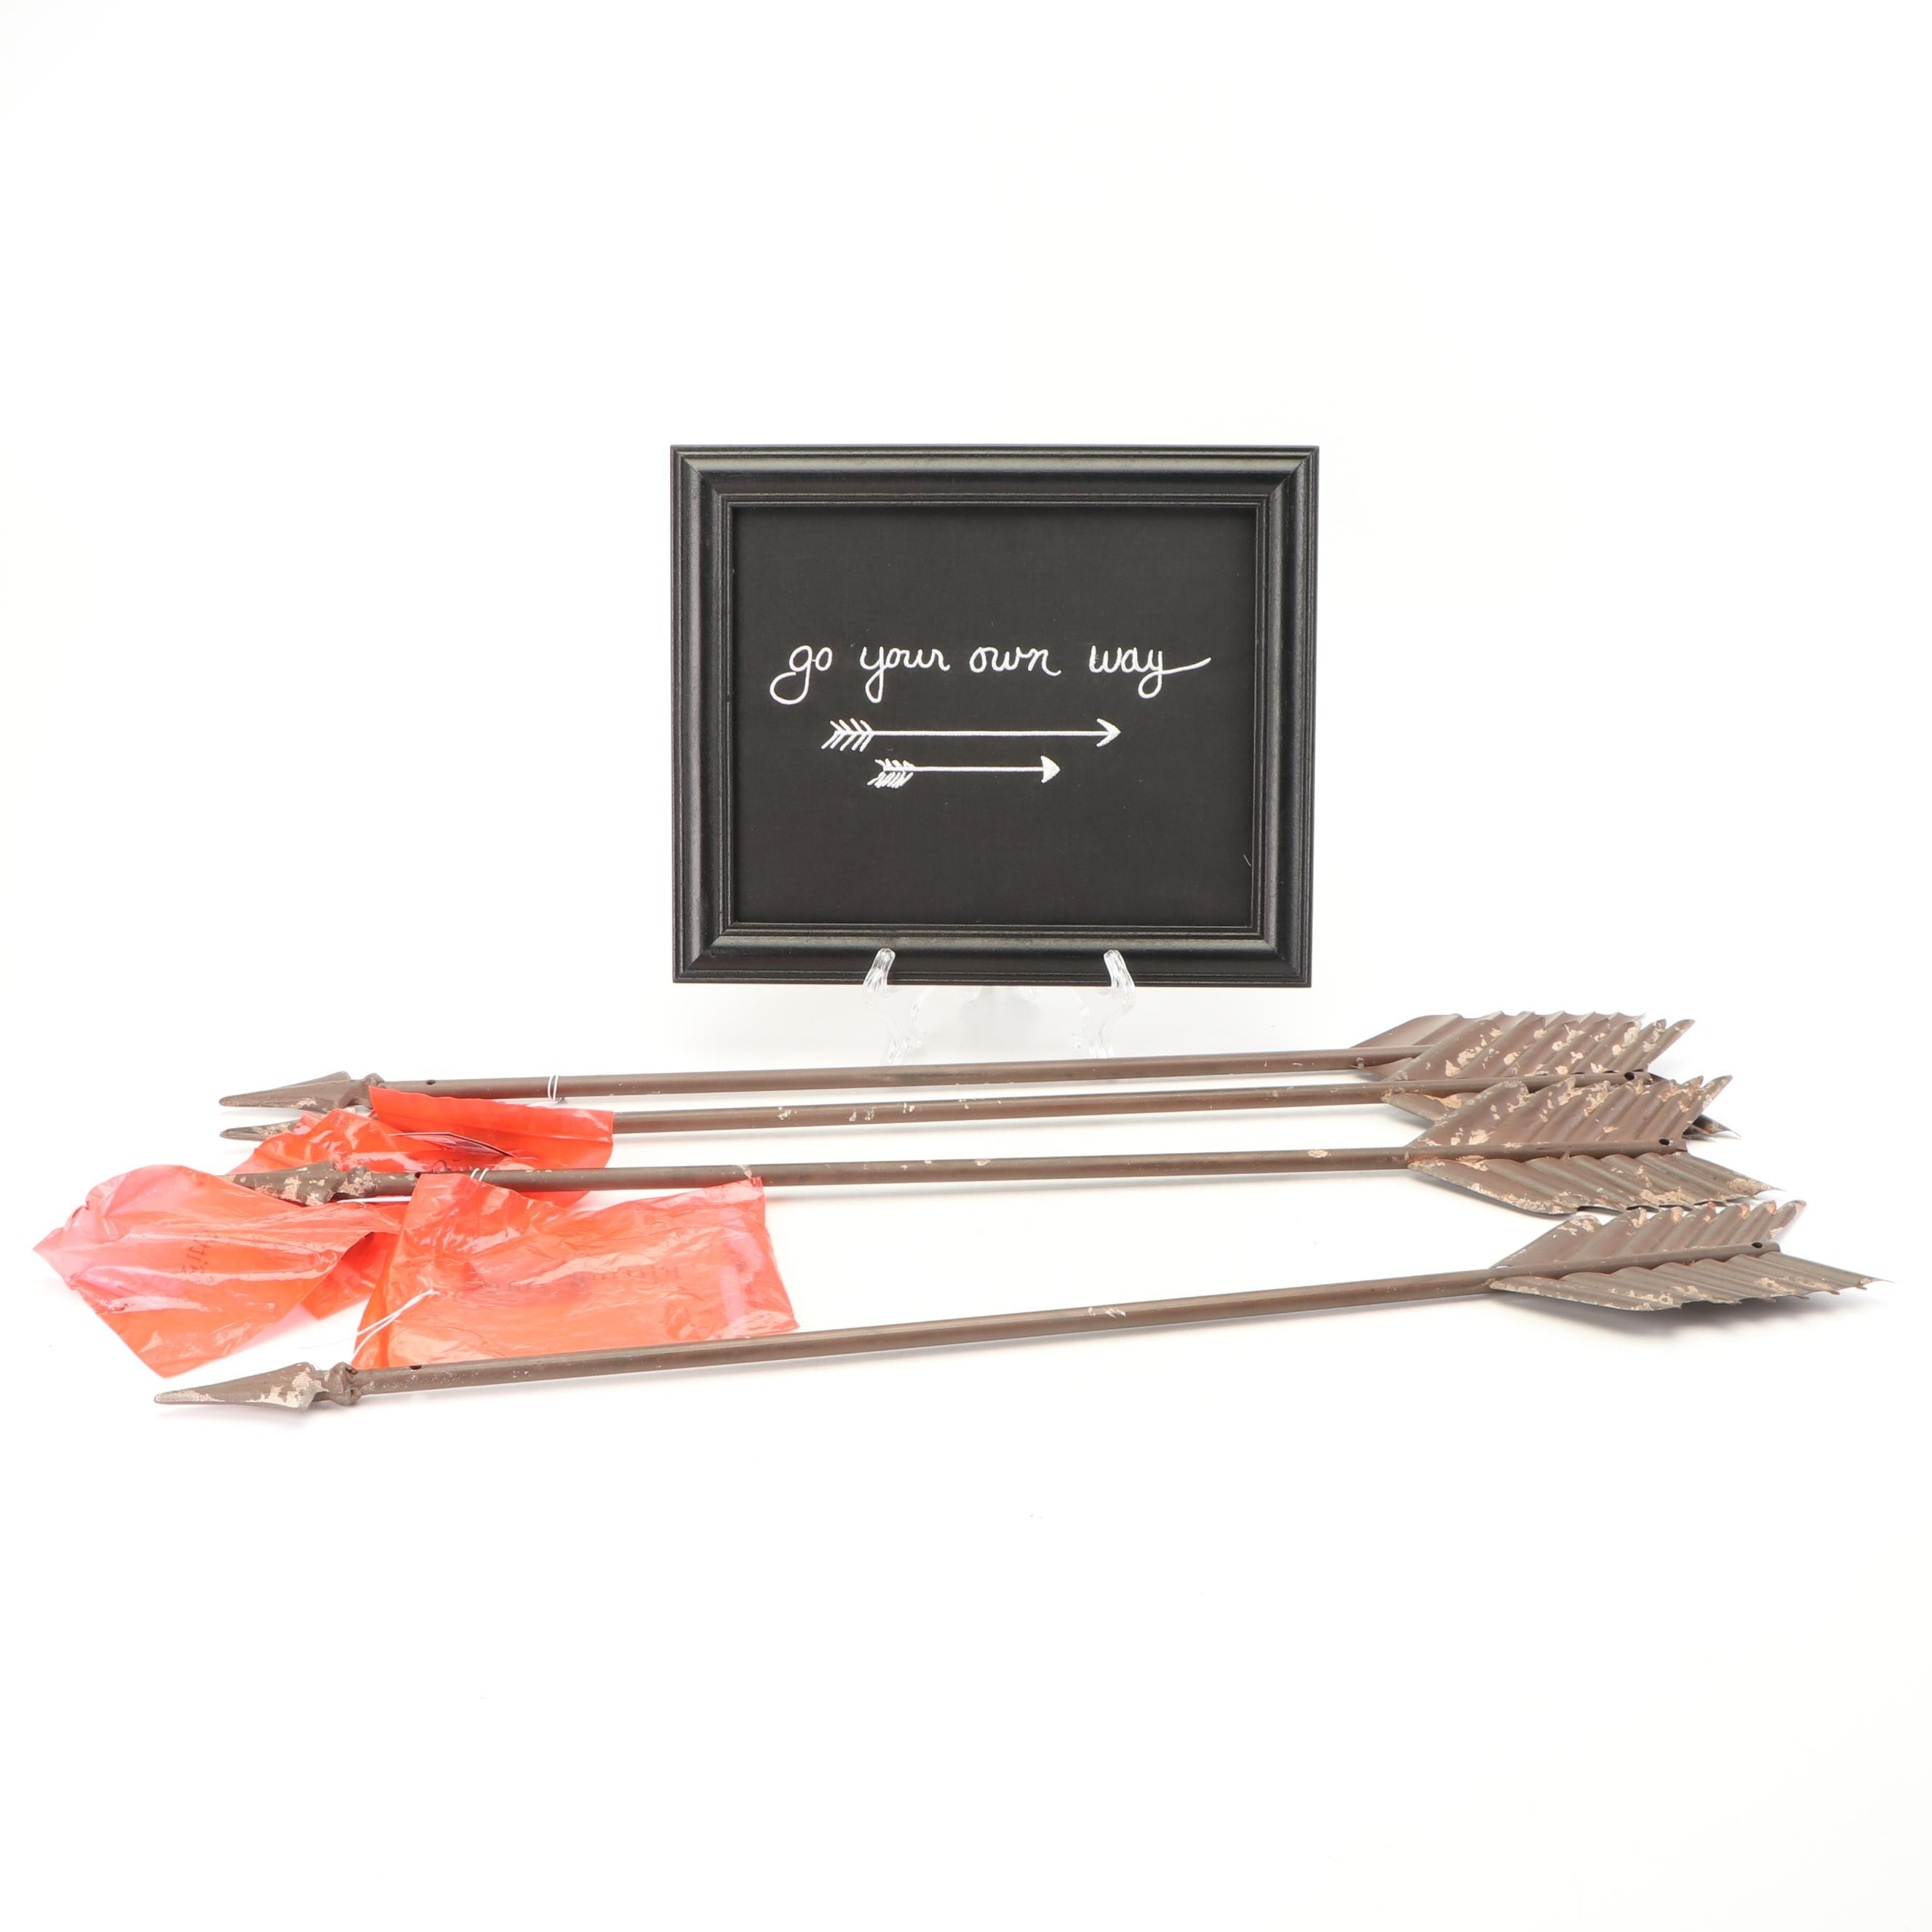 Decorative Metal Arrows and Sign